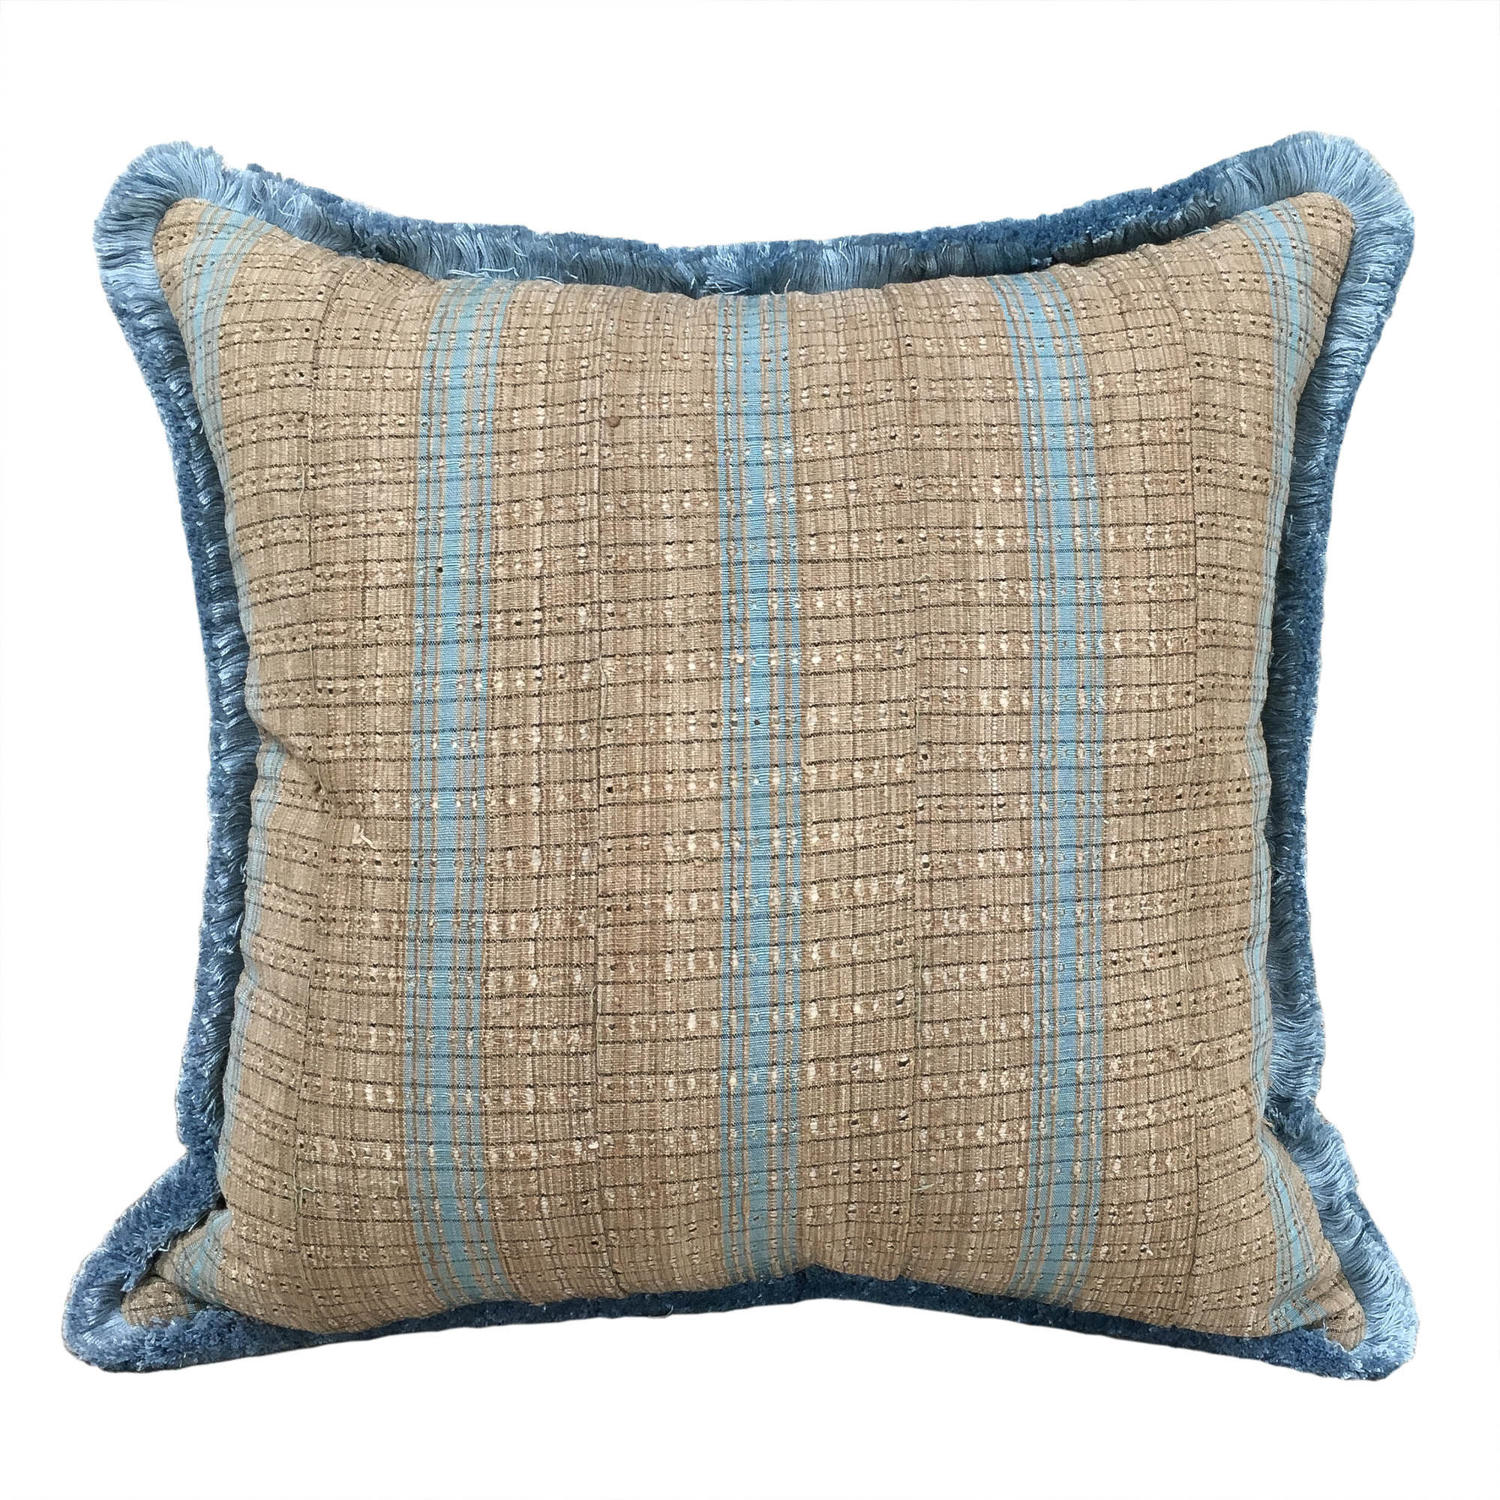 Yoruba Cushions with Fringe Trim